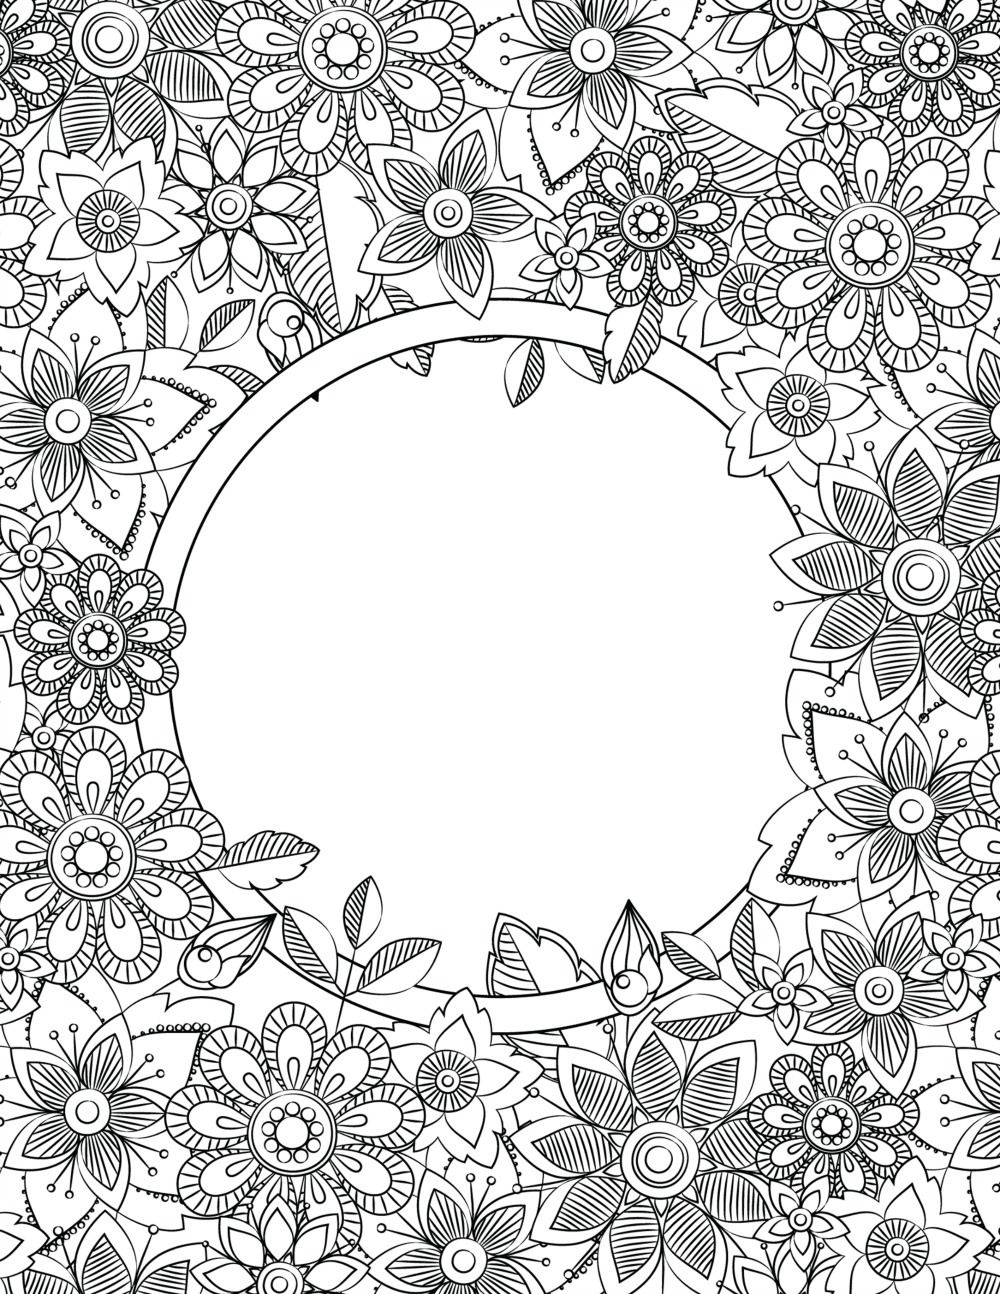 Back To School Binder Cover Adult Coloring Pages | Printables - Free Printable Binder Covers To Color